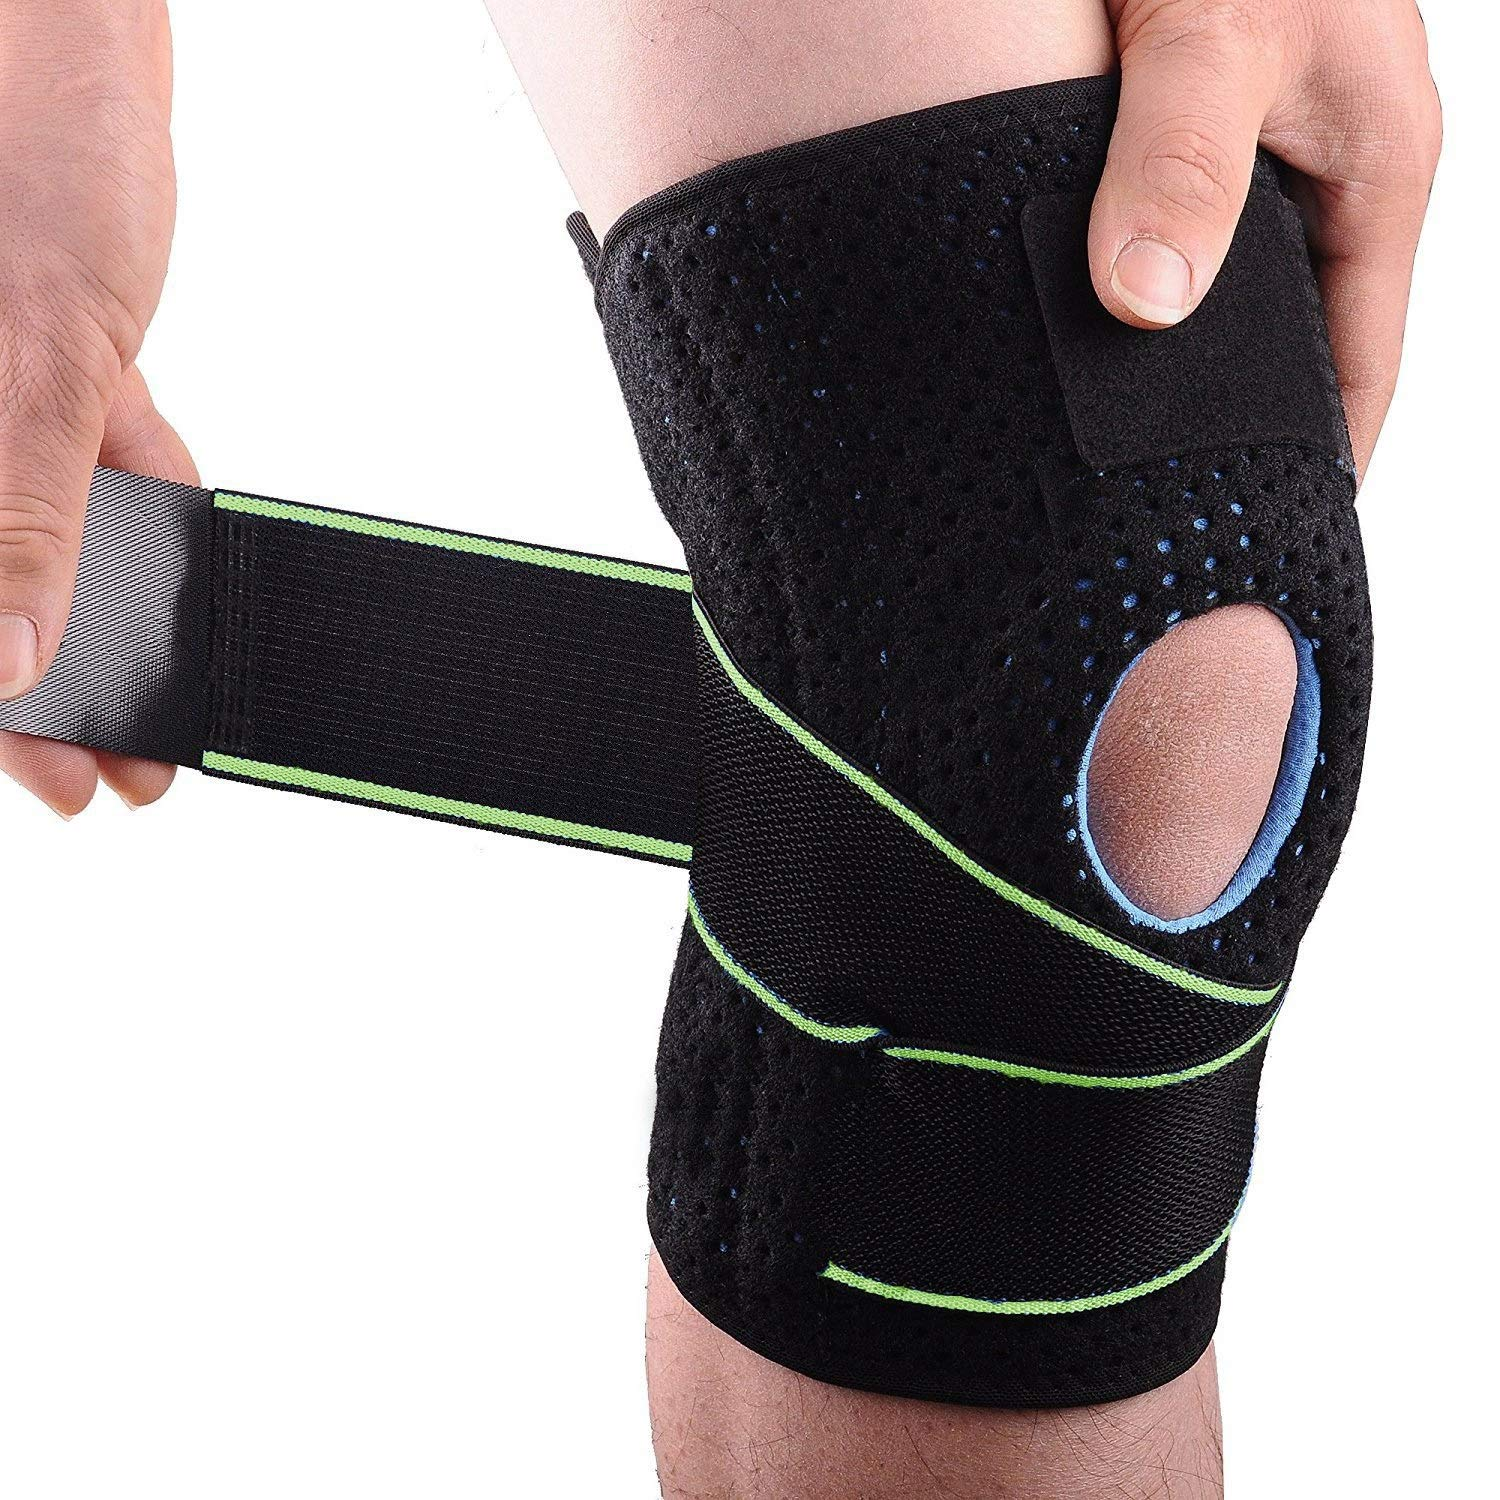 af4b74c49c Amazon.com: AlexBasic Knee Brace 1 PCS Knee Brace Support with Side  Stabilizers & Patella Gel Pads for Knee Pain, Meniscus Tear, Arthritis Pain  and Support, ...